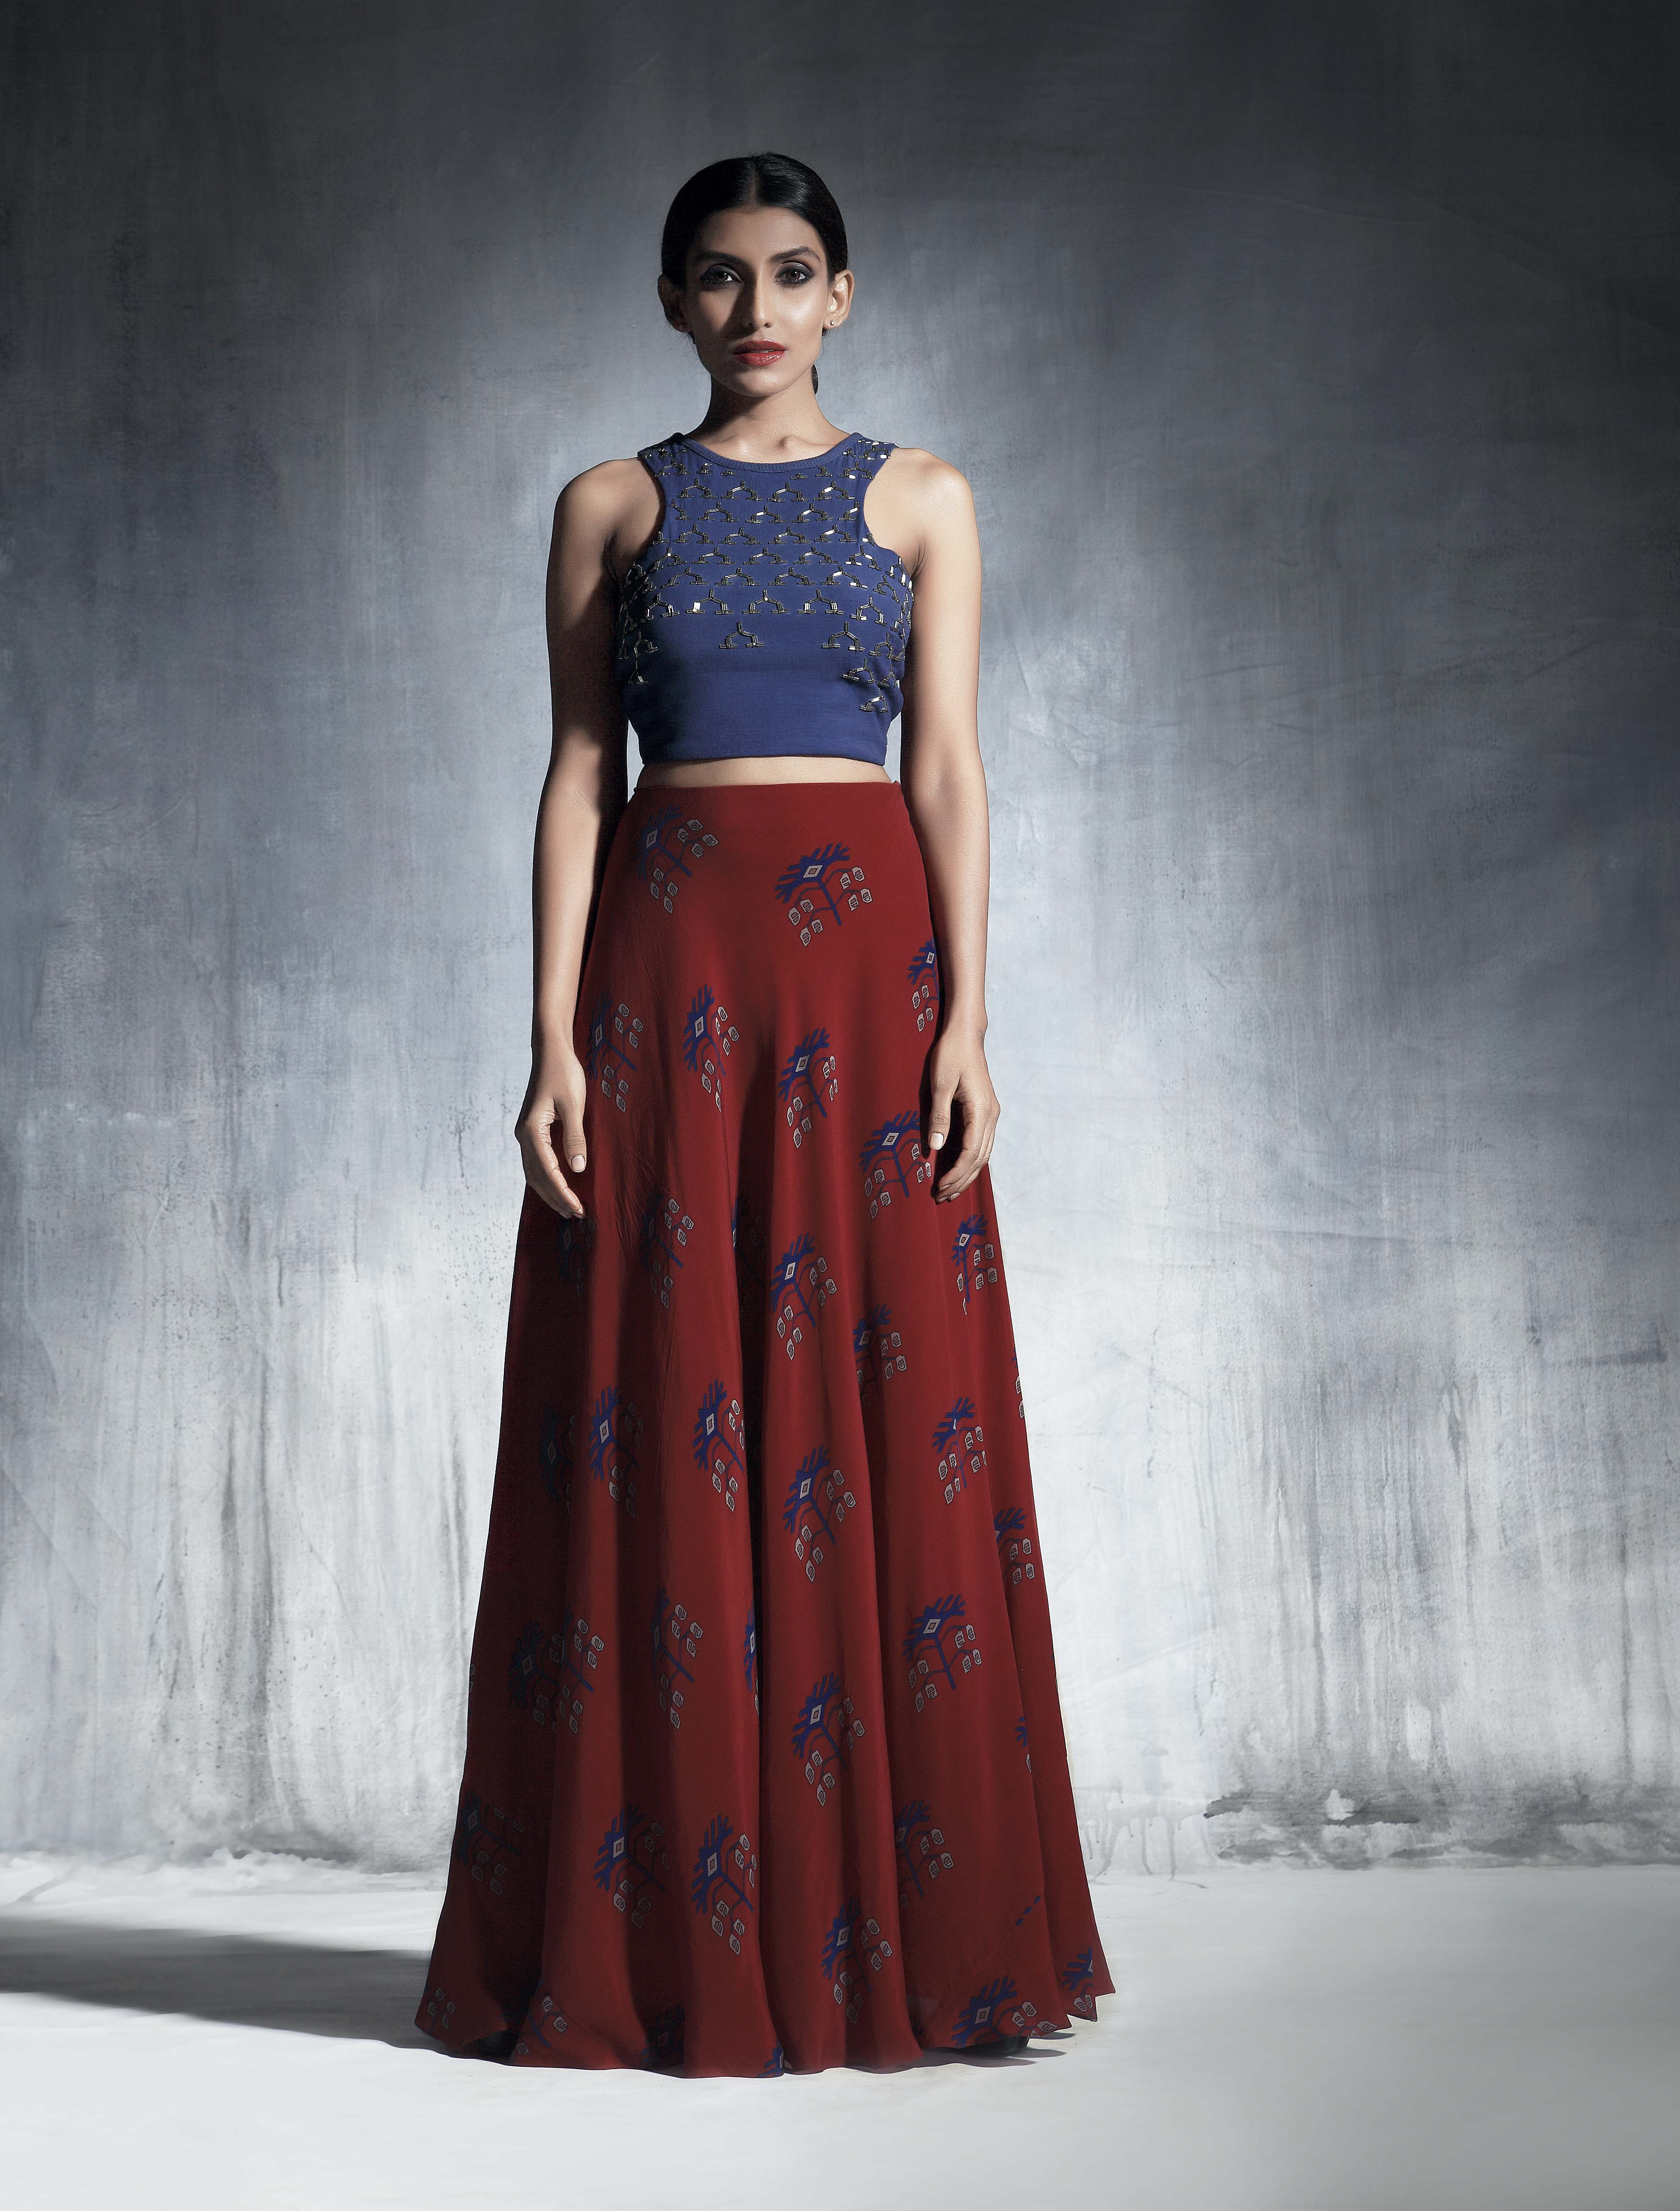 Marsala flared skirt